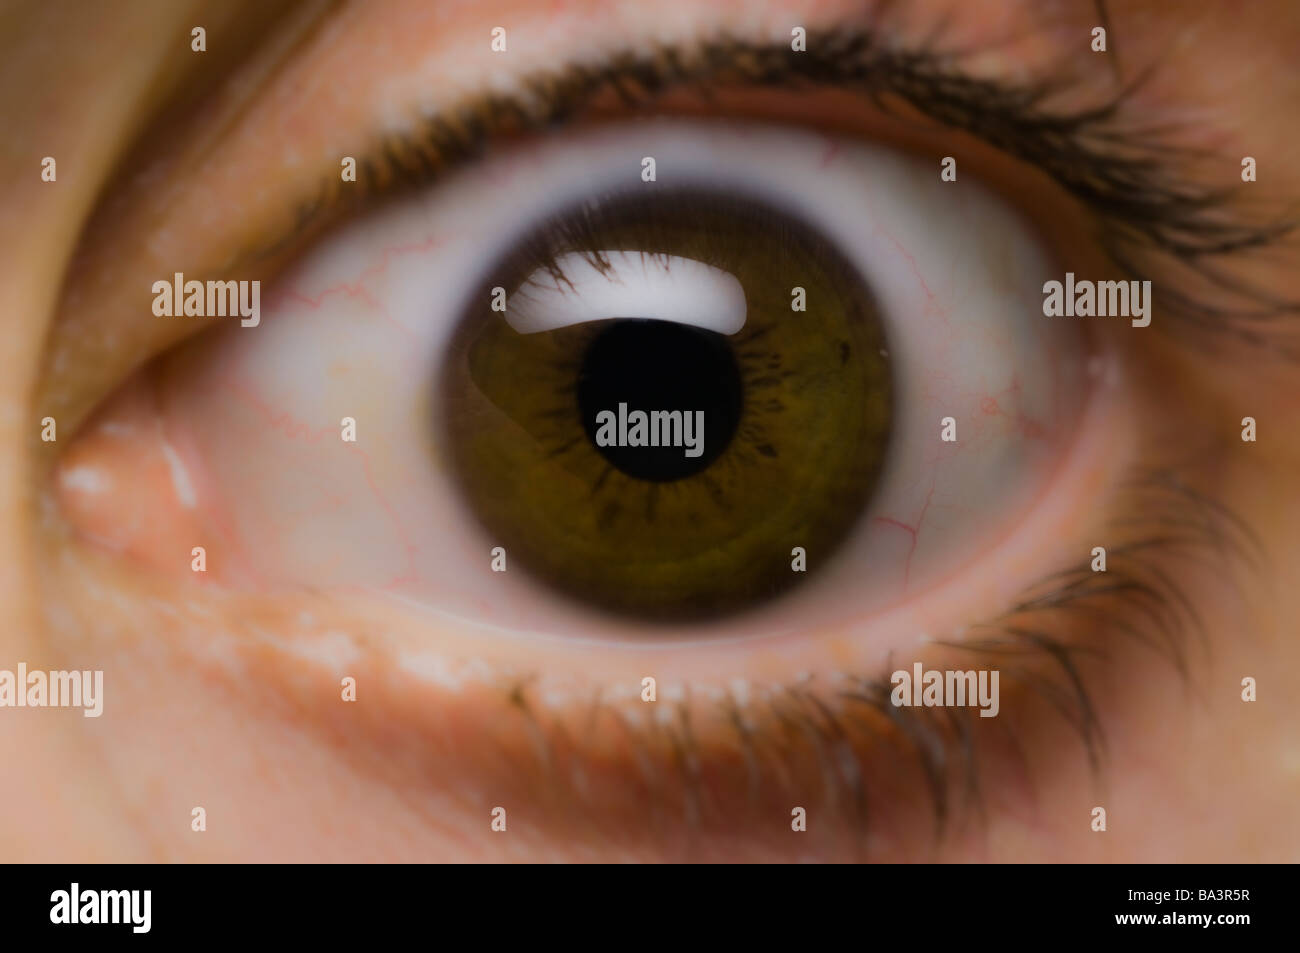 yeux bruns Photo Stock